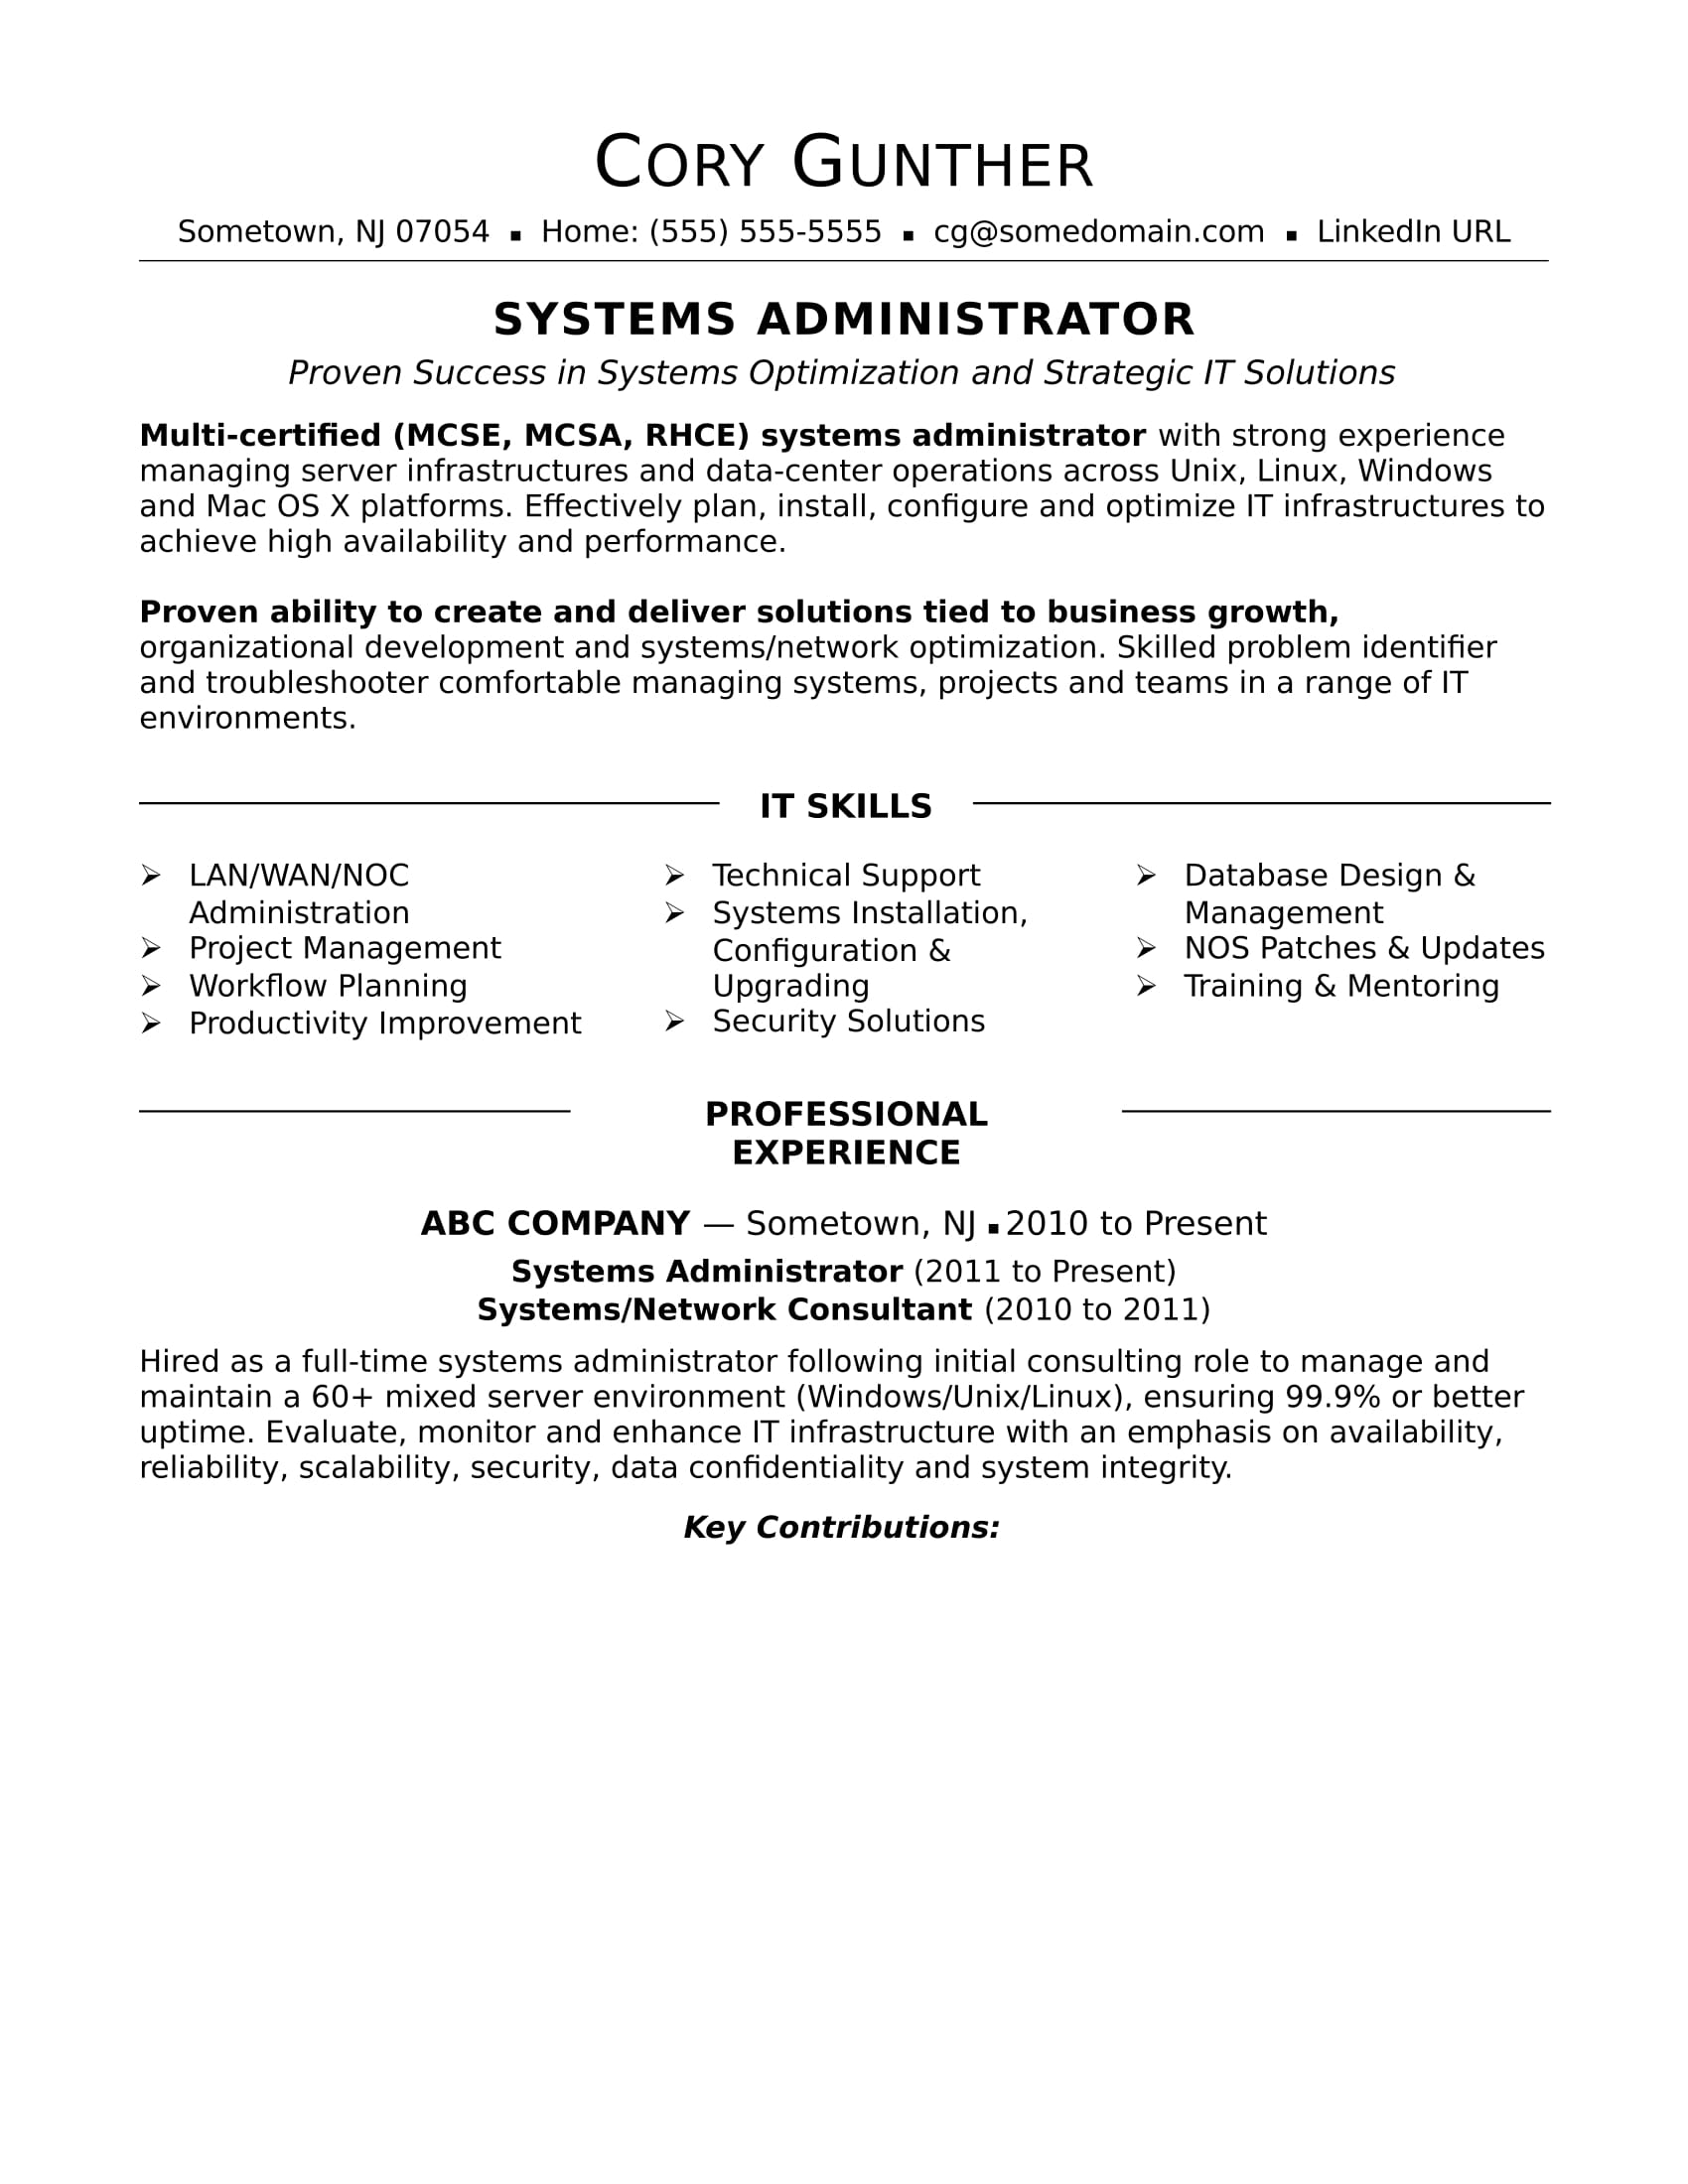 Linux System Administrator Resume Doc Sample Resume For An Experienced Systems Administrator